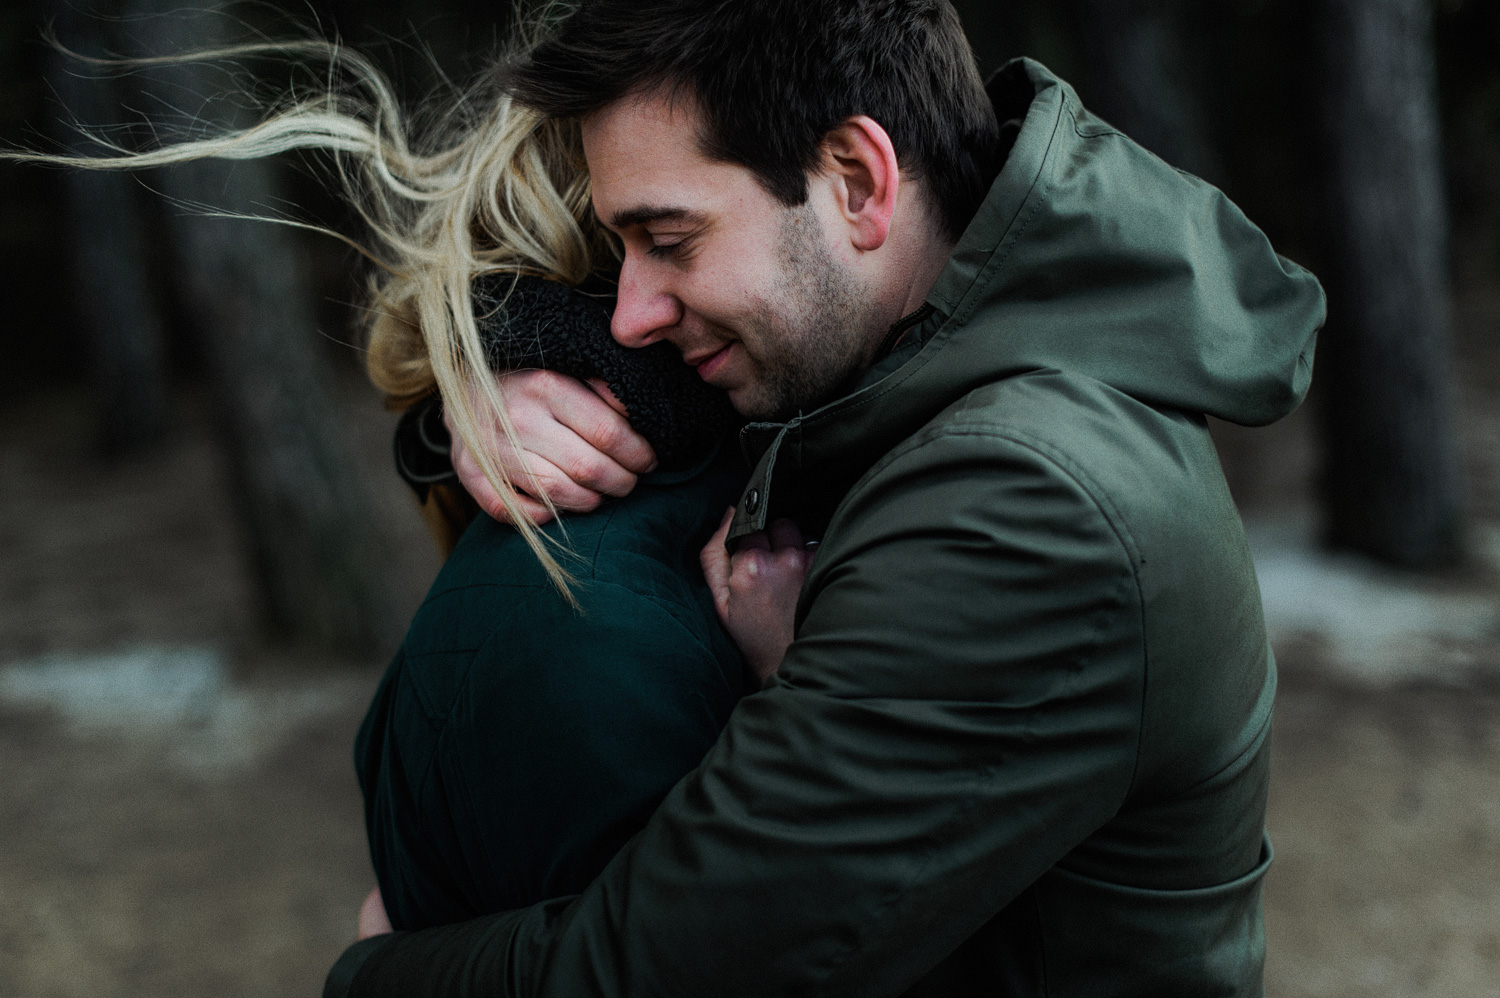 Guy hugging his girlfriend during couple shoot